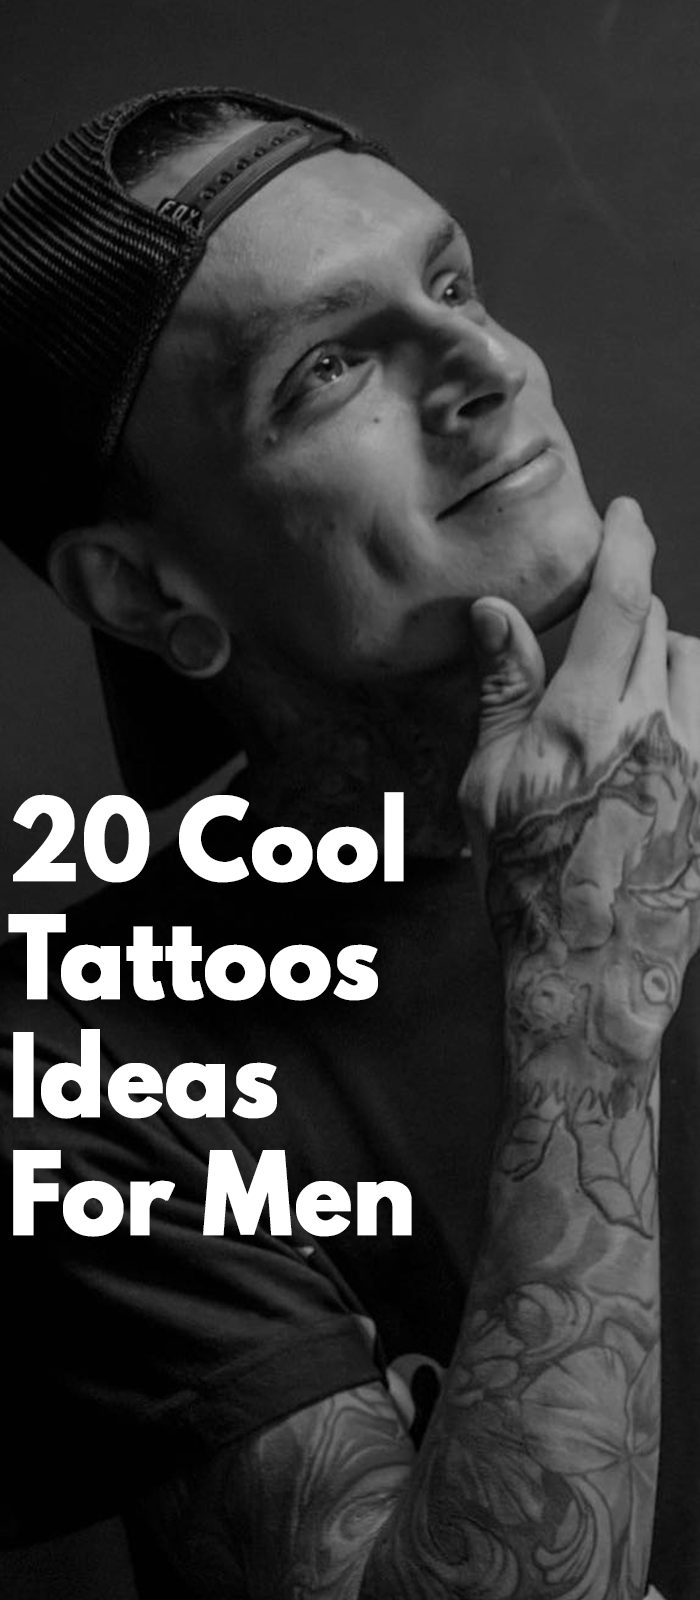 20 Cool Tattoo Ideas For Men